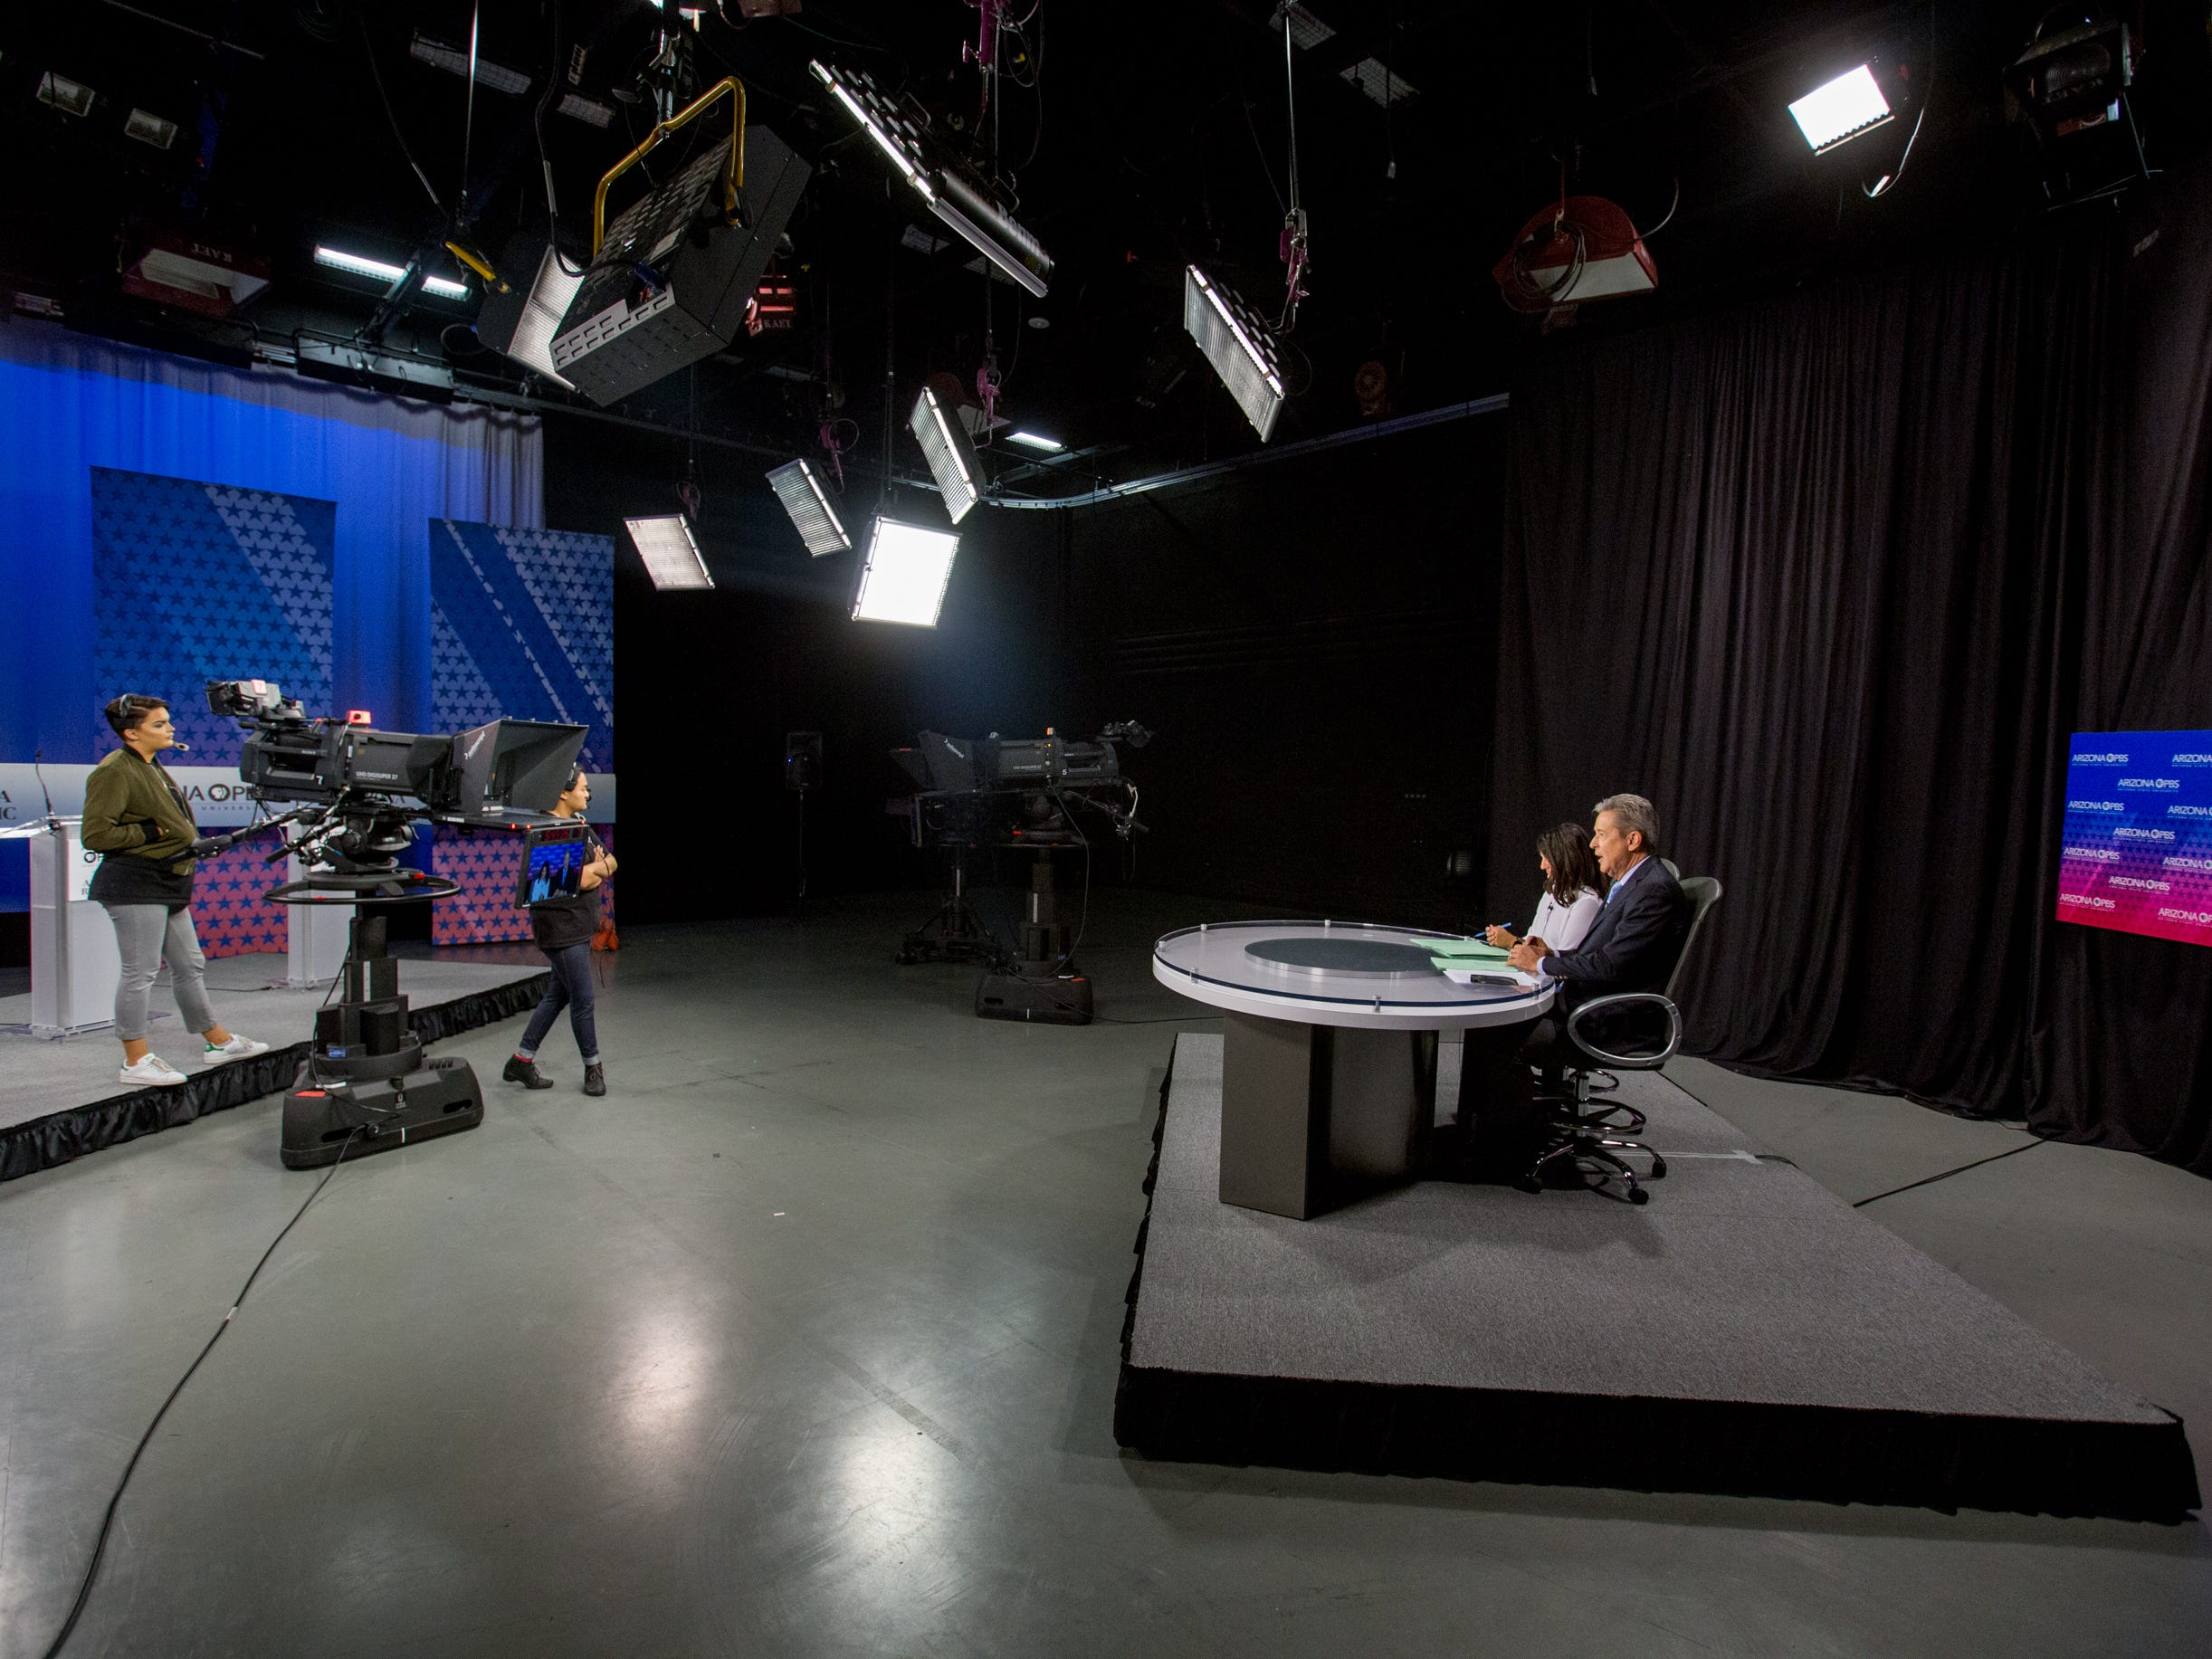 Crews and talent go through a debate opening on July 31, 2018, during a debate among Democrats vying for Arizona governor at Arizona State University's Walter Cronkite School of Journalism in Phoenix, Arizona.